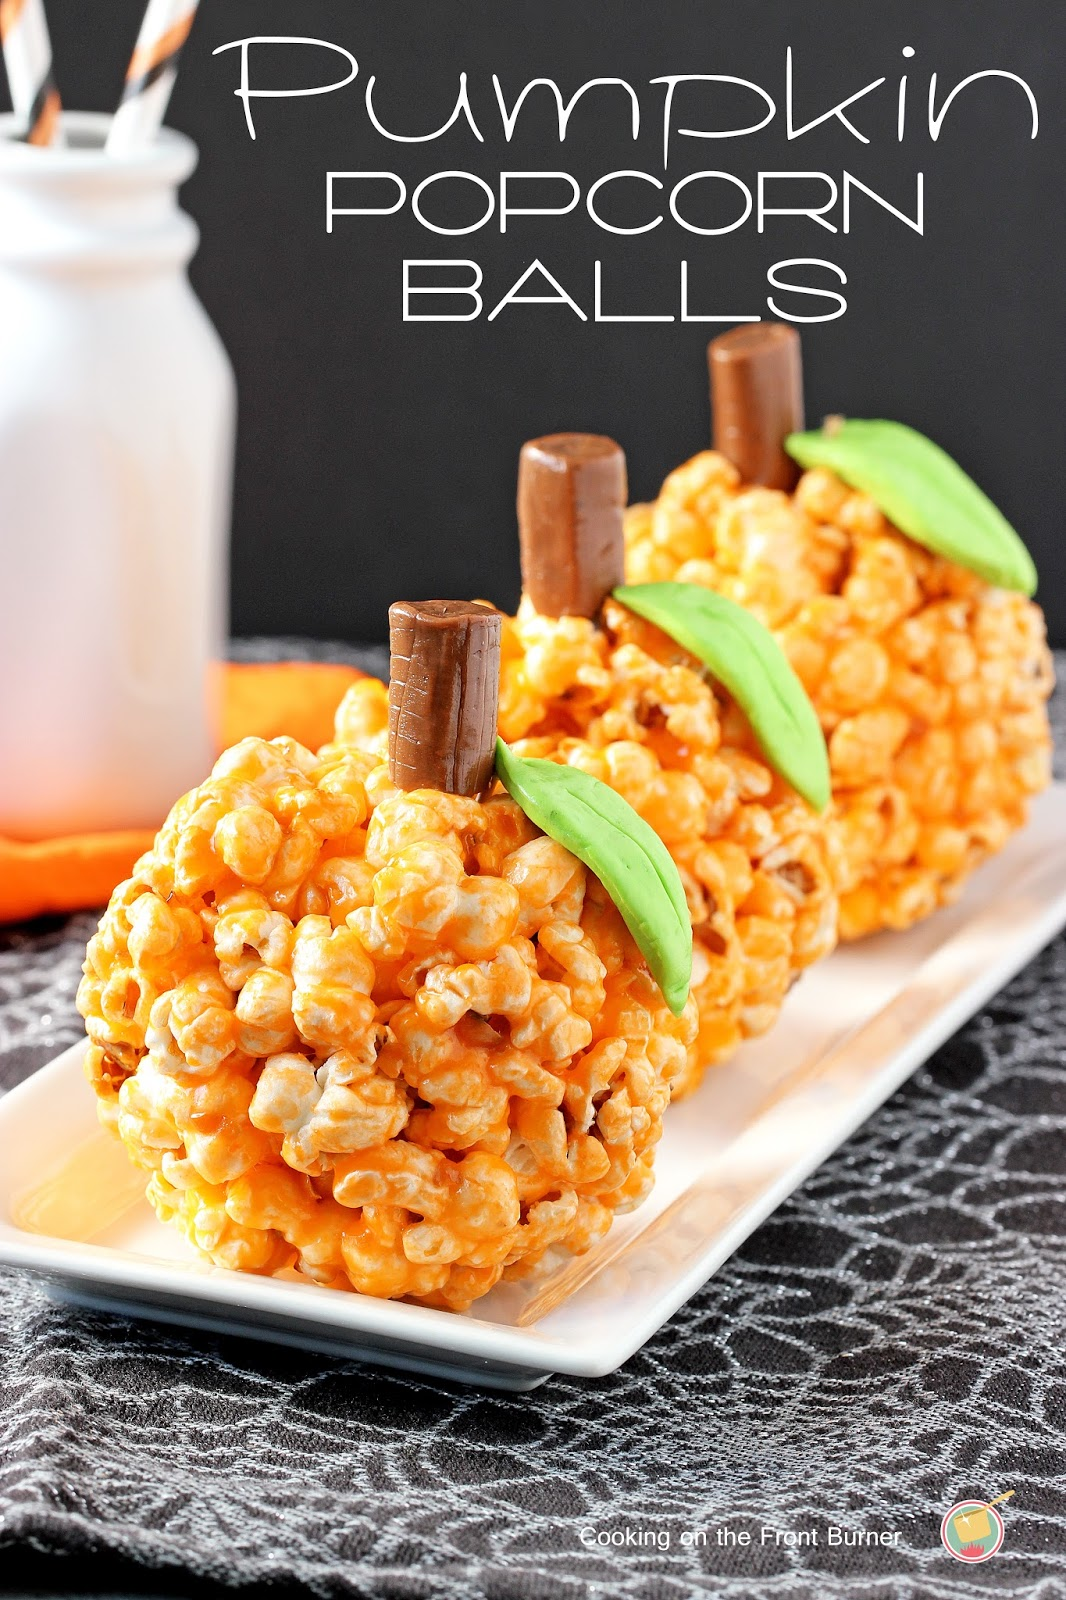 Pumpkin Popcorn Balls from Cooking on the Front Burner